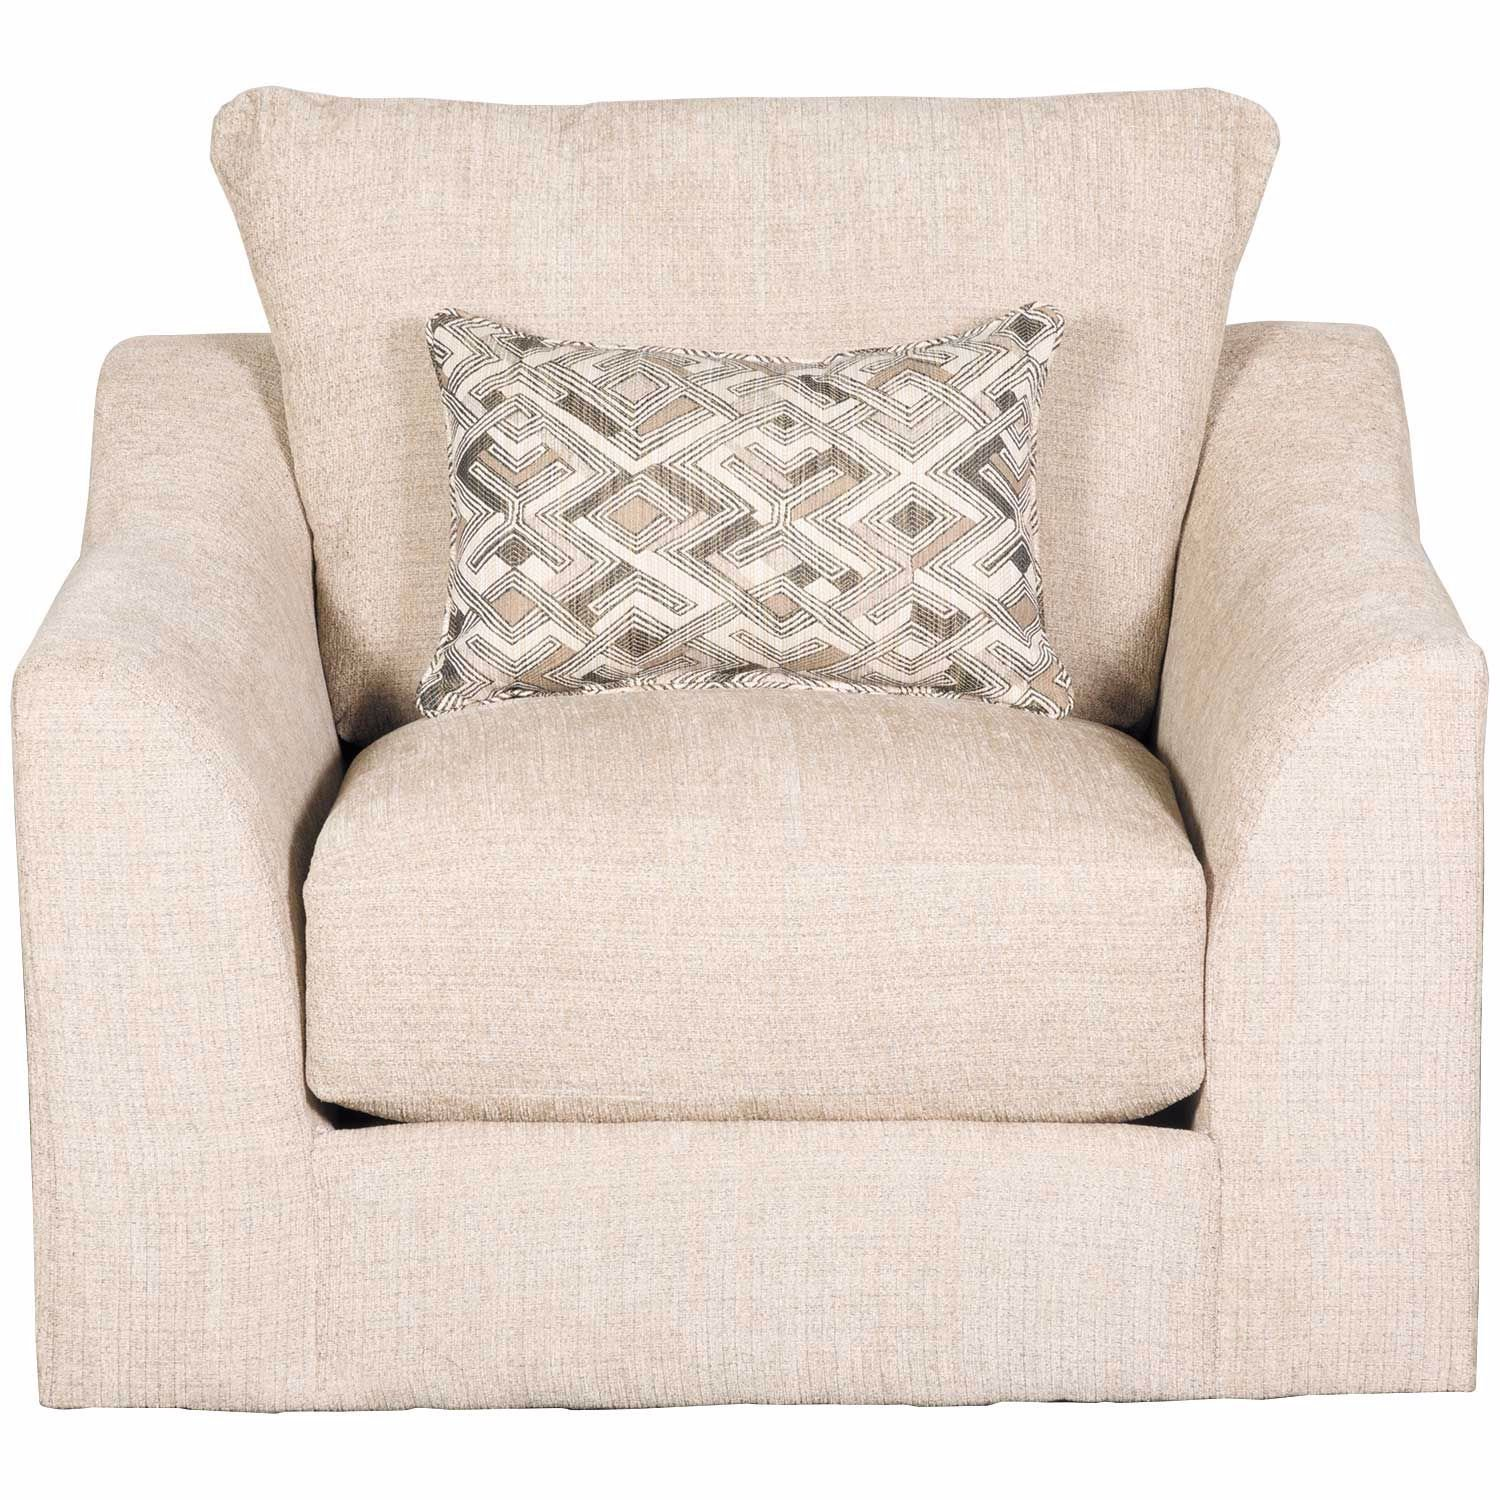 Outstanding Sophie Marble Swivel Chair Bralicious Painted Fabric Chair Ideas Braliciousco